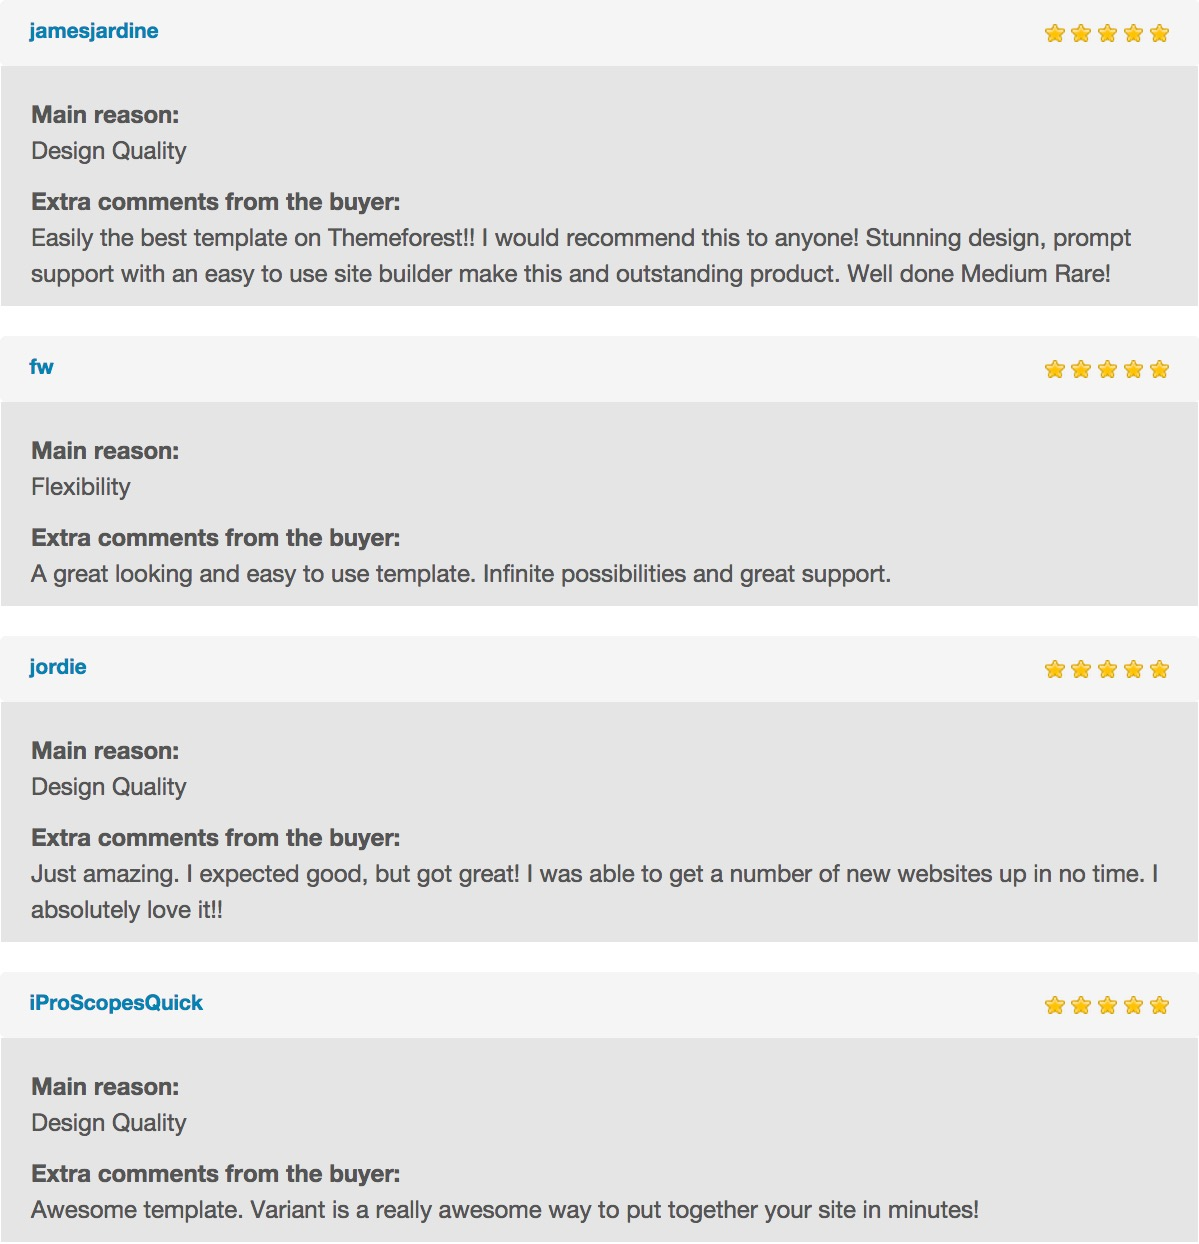 4 foundry reviews - Foundry Multipurpose HTML + Variant Page Builder